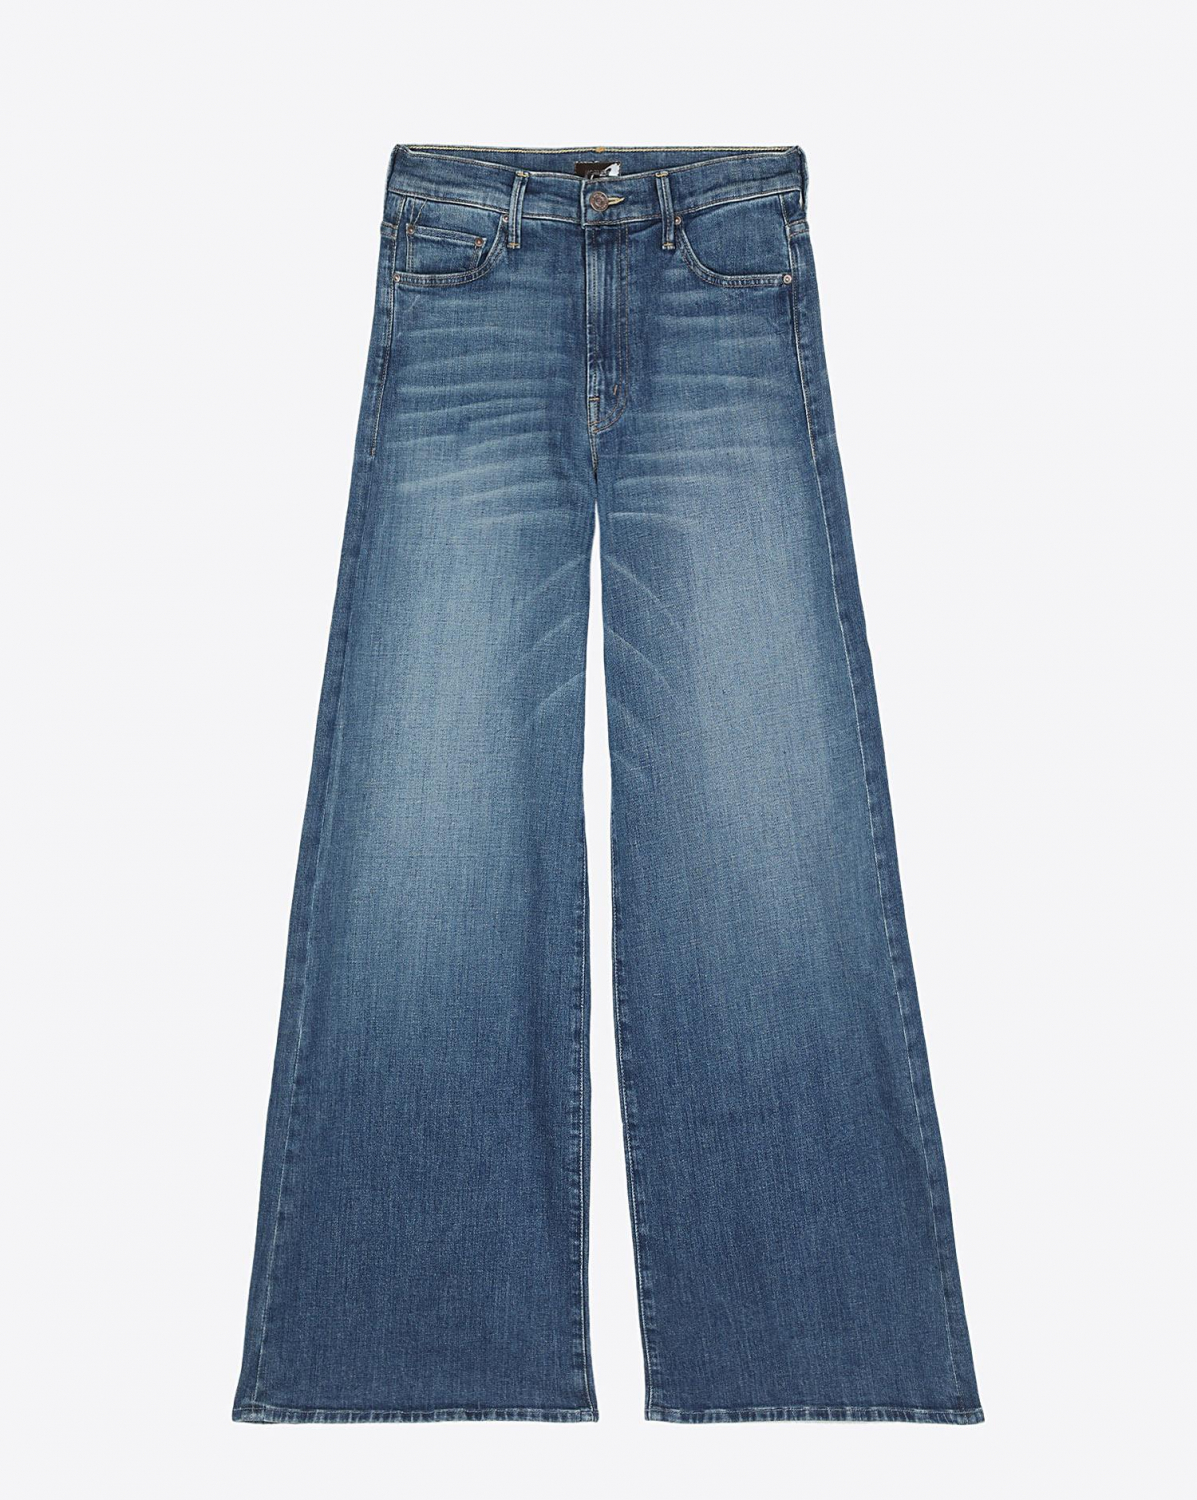 Mother Denim The Undercover Jean - Just One Sip